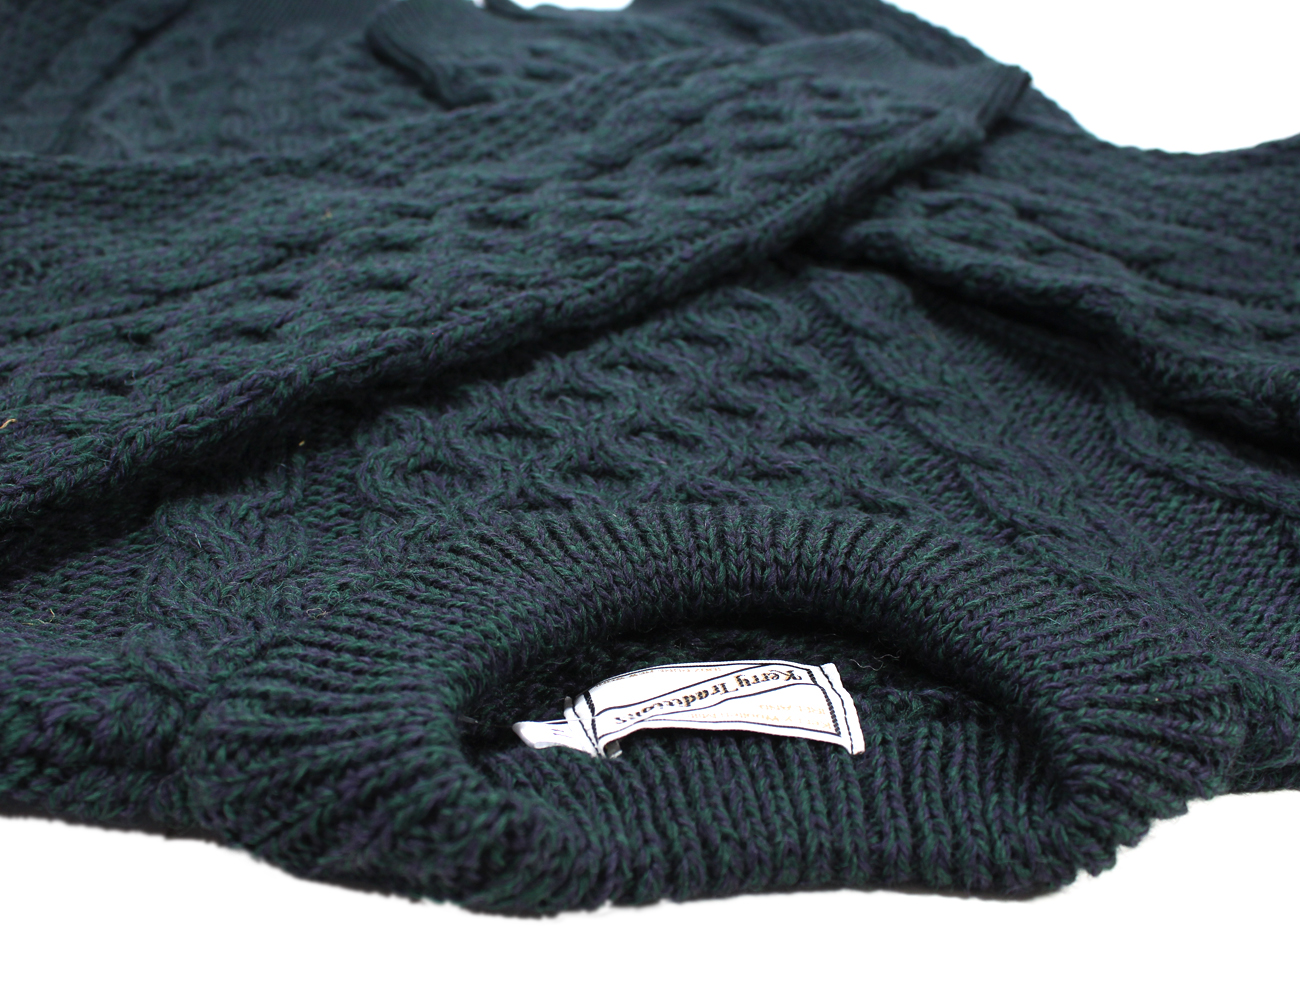 Fisherman Knit Sweater Plus Size